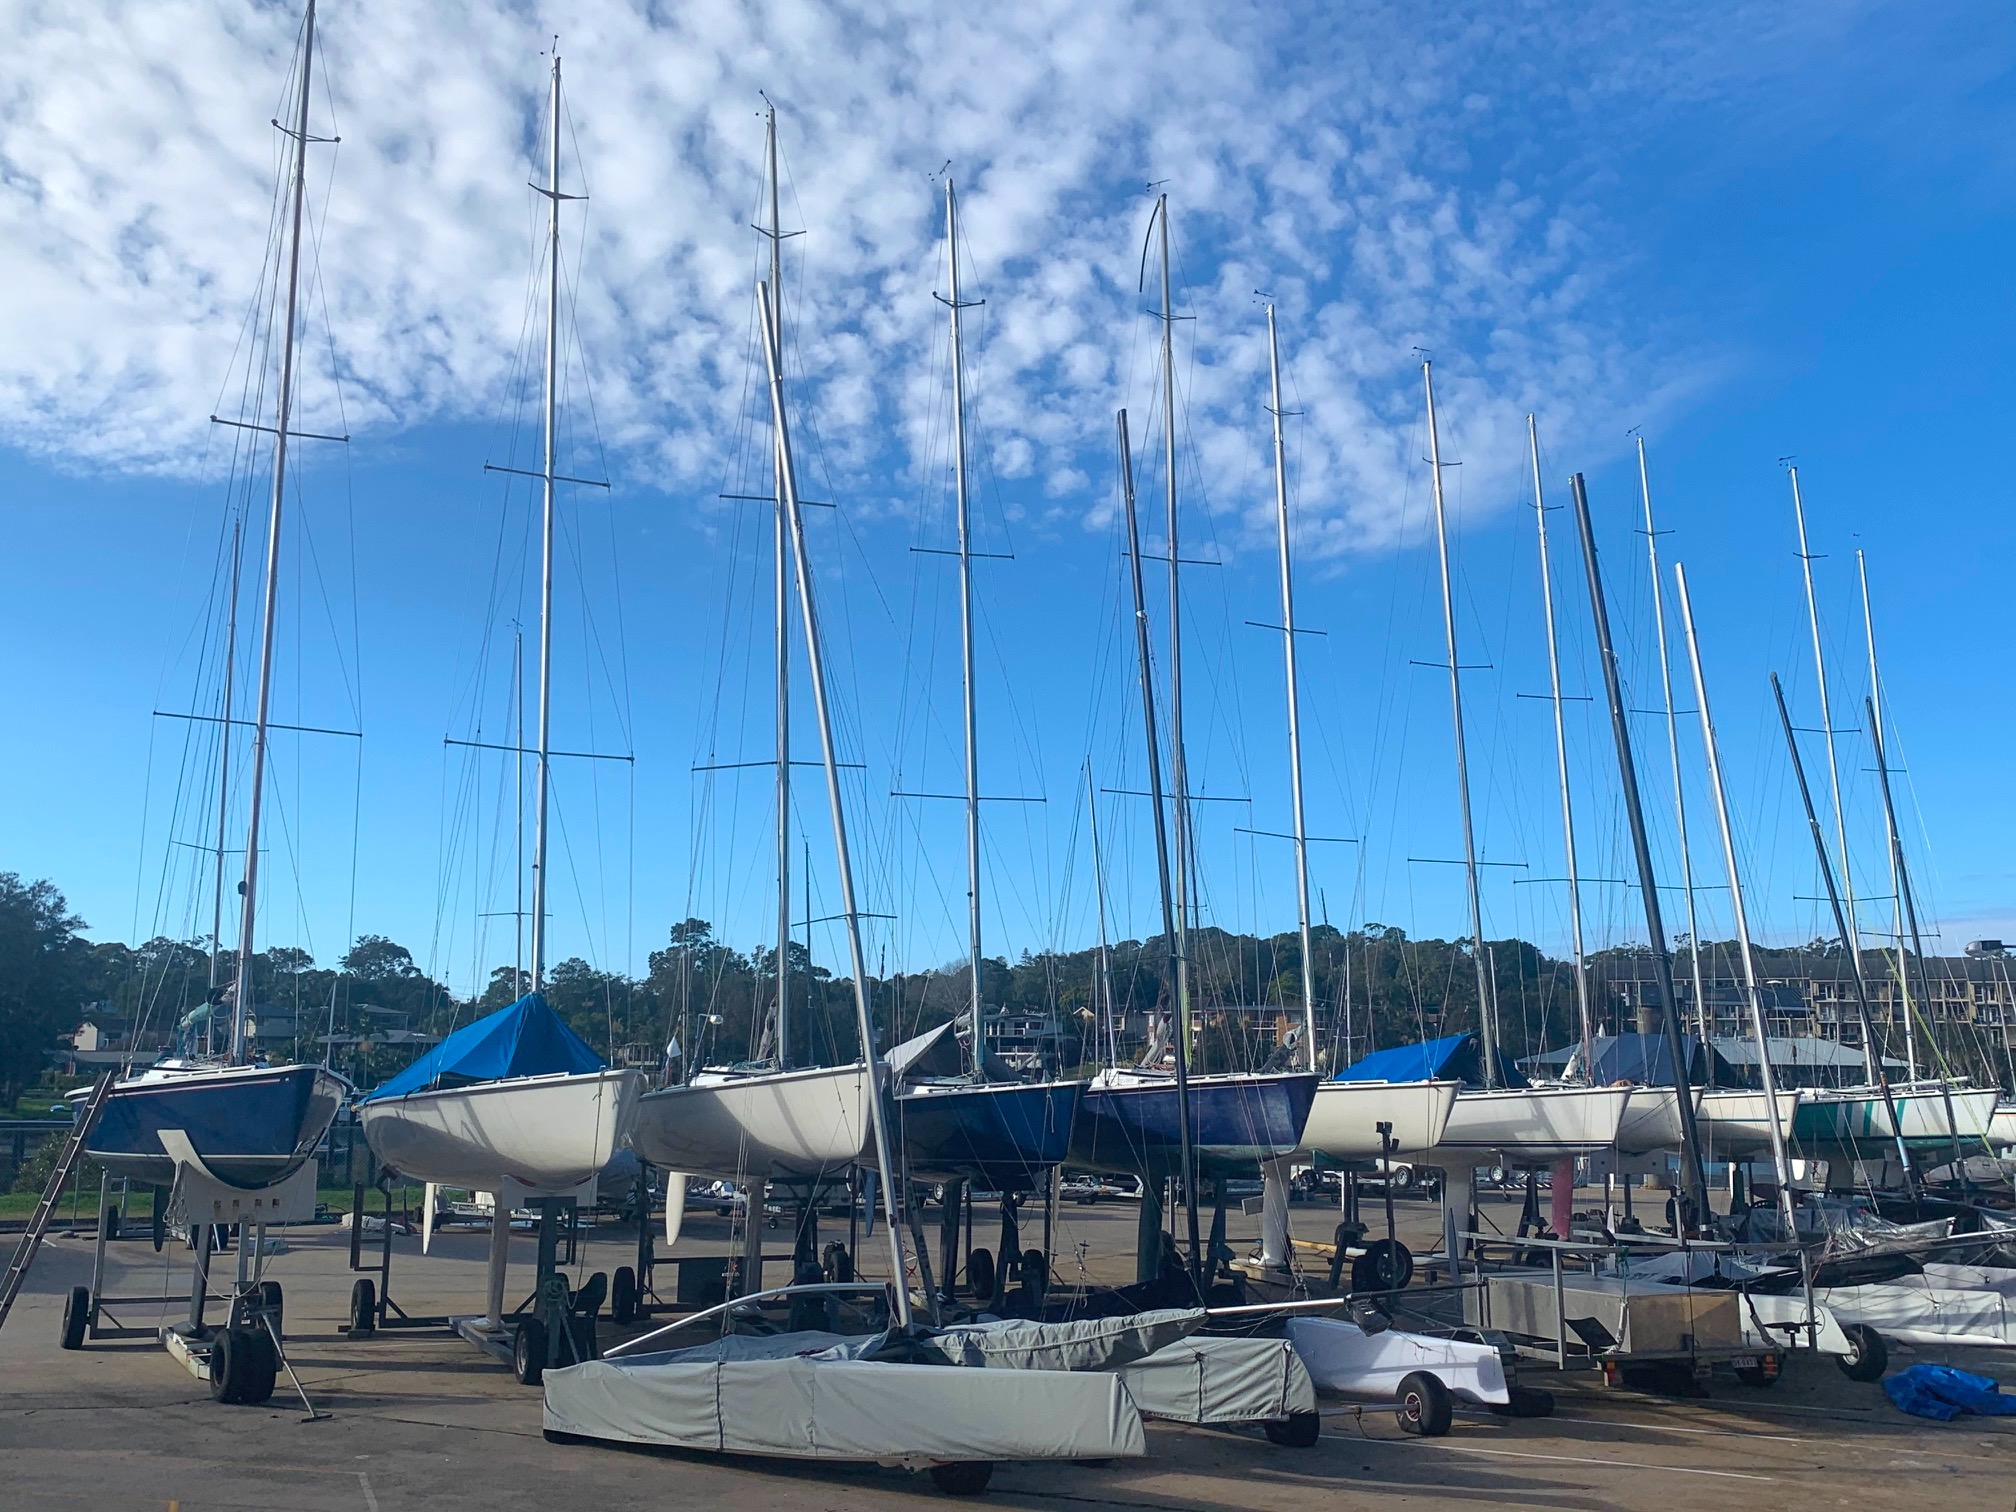 Eleven 11Metre sailing yachts wait a dock Royal Prince Alfred Yacht Club Newport Australia